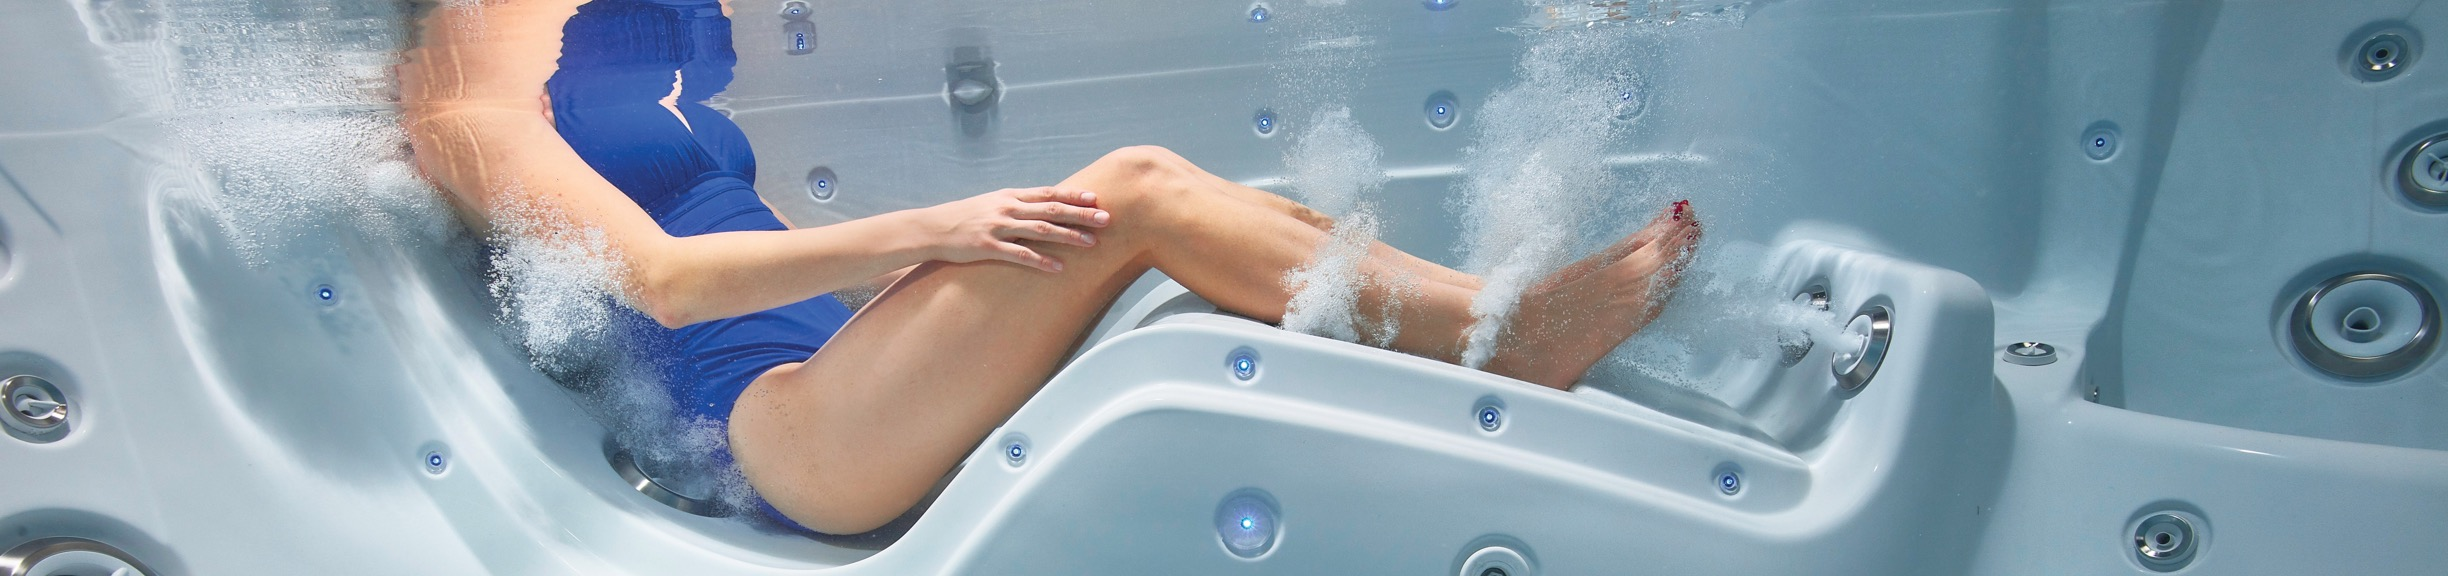 How Often Should I Use A Hot Tub? Take The Daily Soak Challenge!